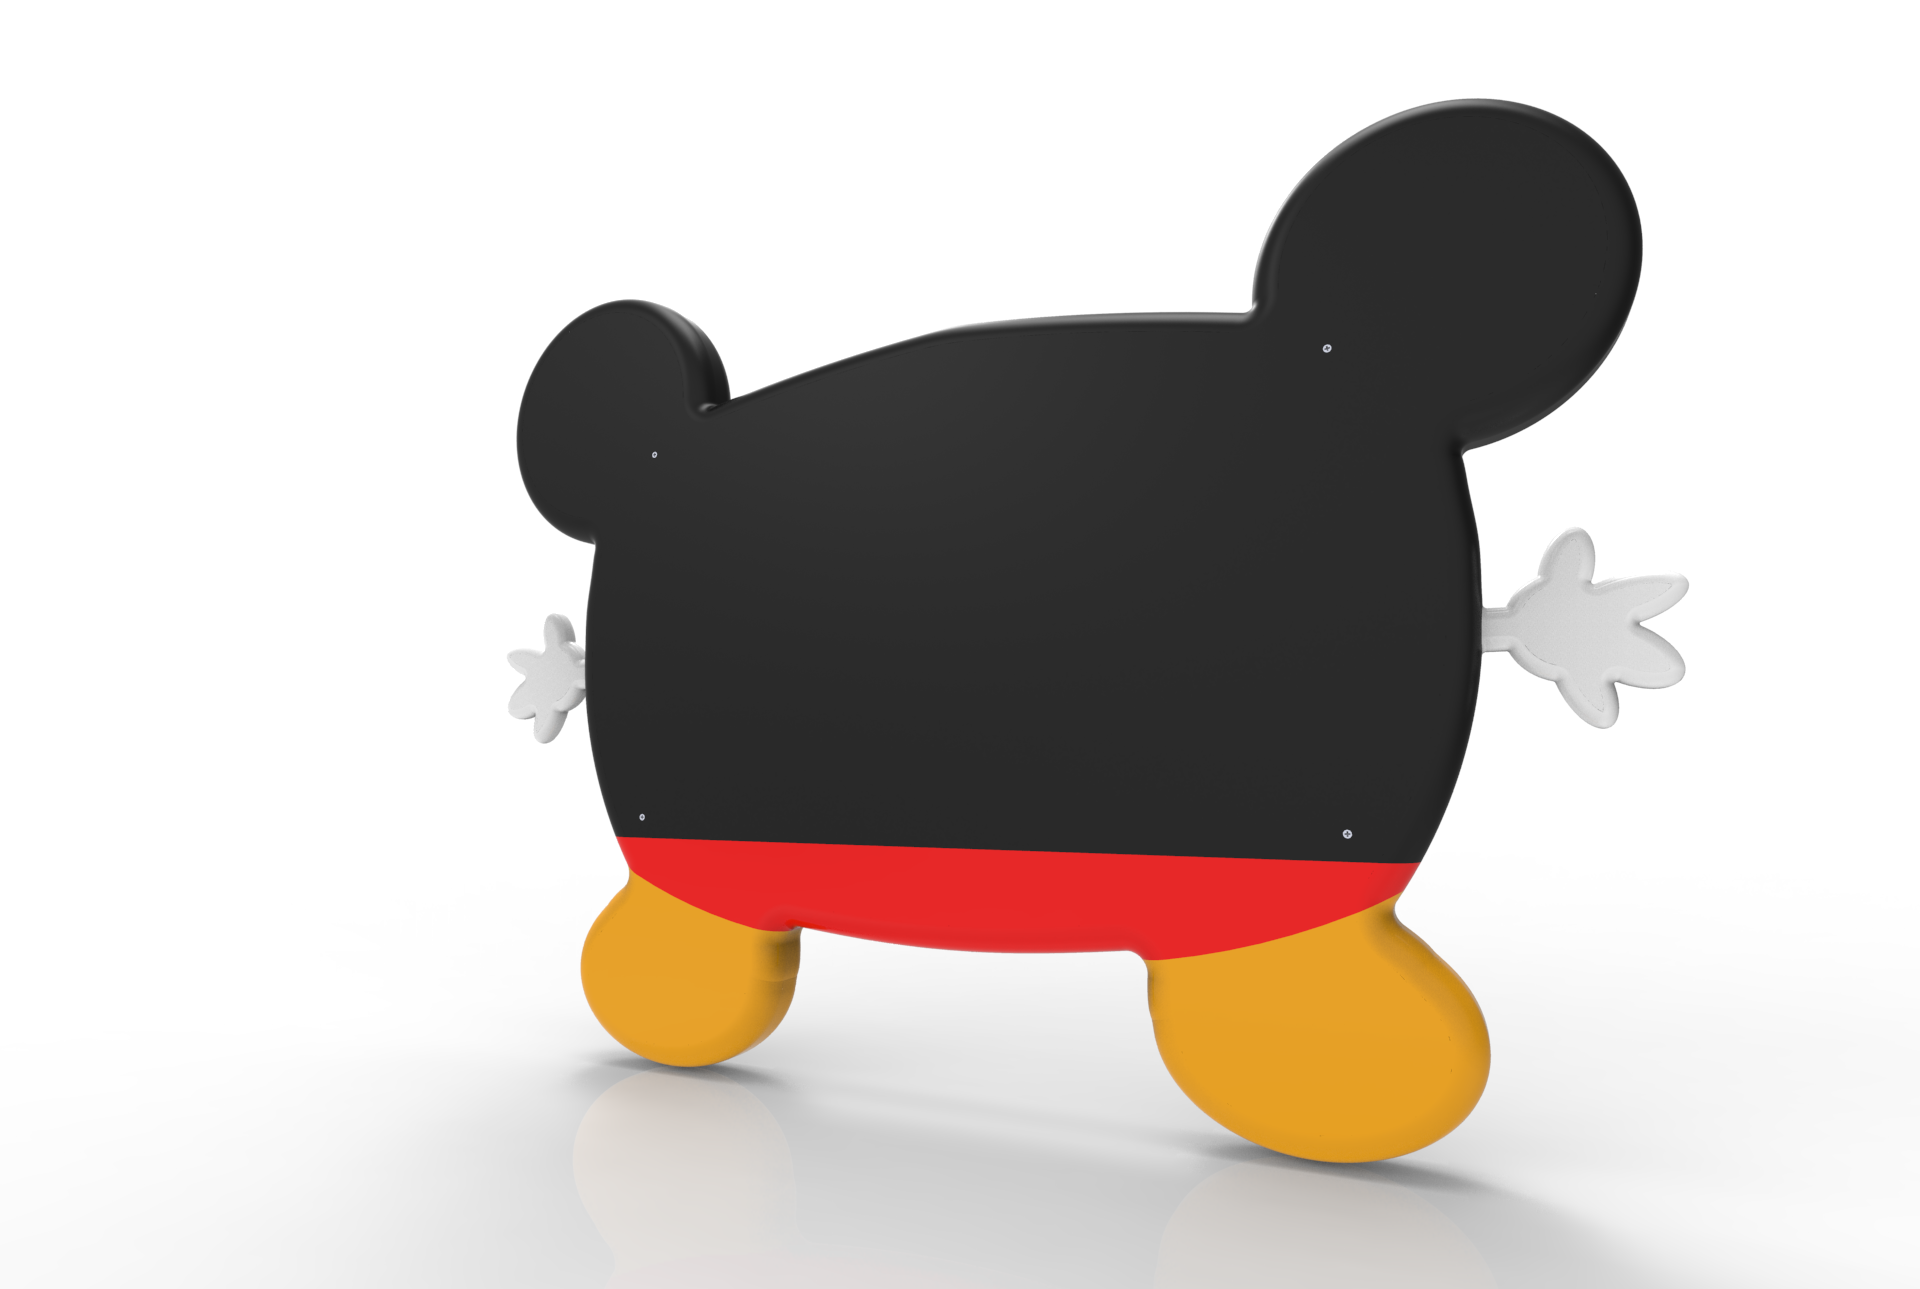 Cardboard Helicopter Product Design Cleveland Ohio Product Development Industrial Design - Disney Mickey Mouse Clubhouse Digital Smart iPad Tablet Electronics Case1.png